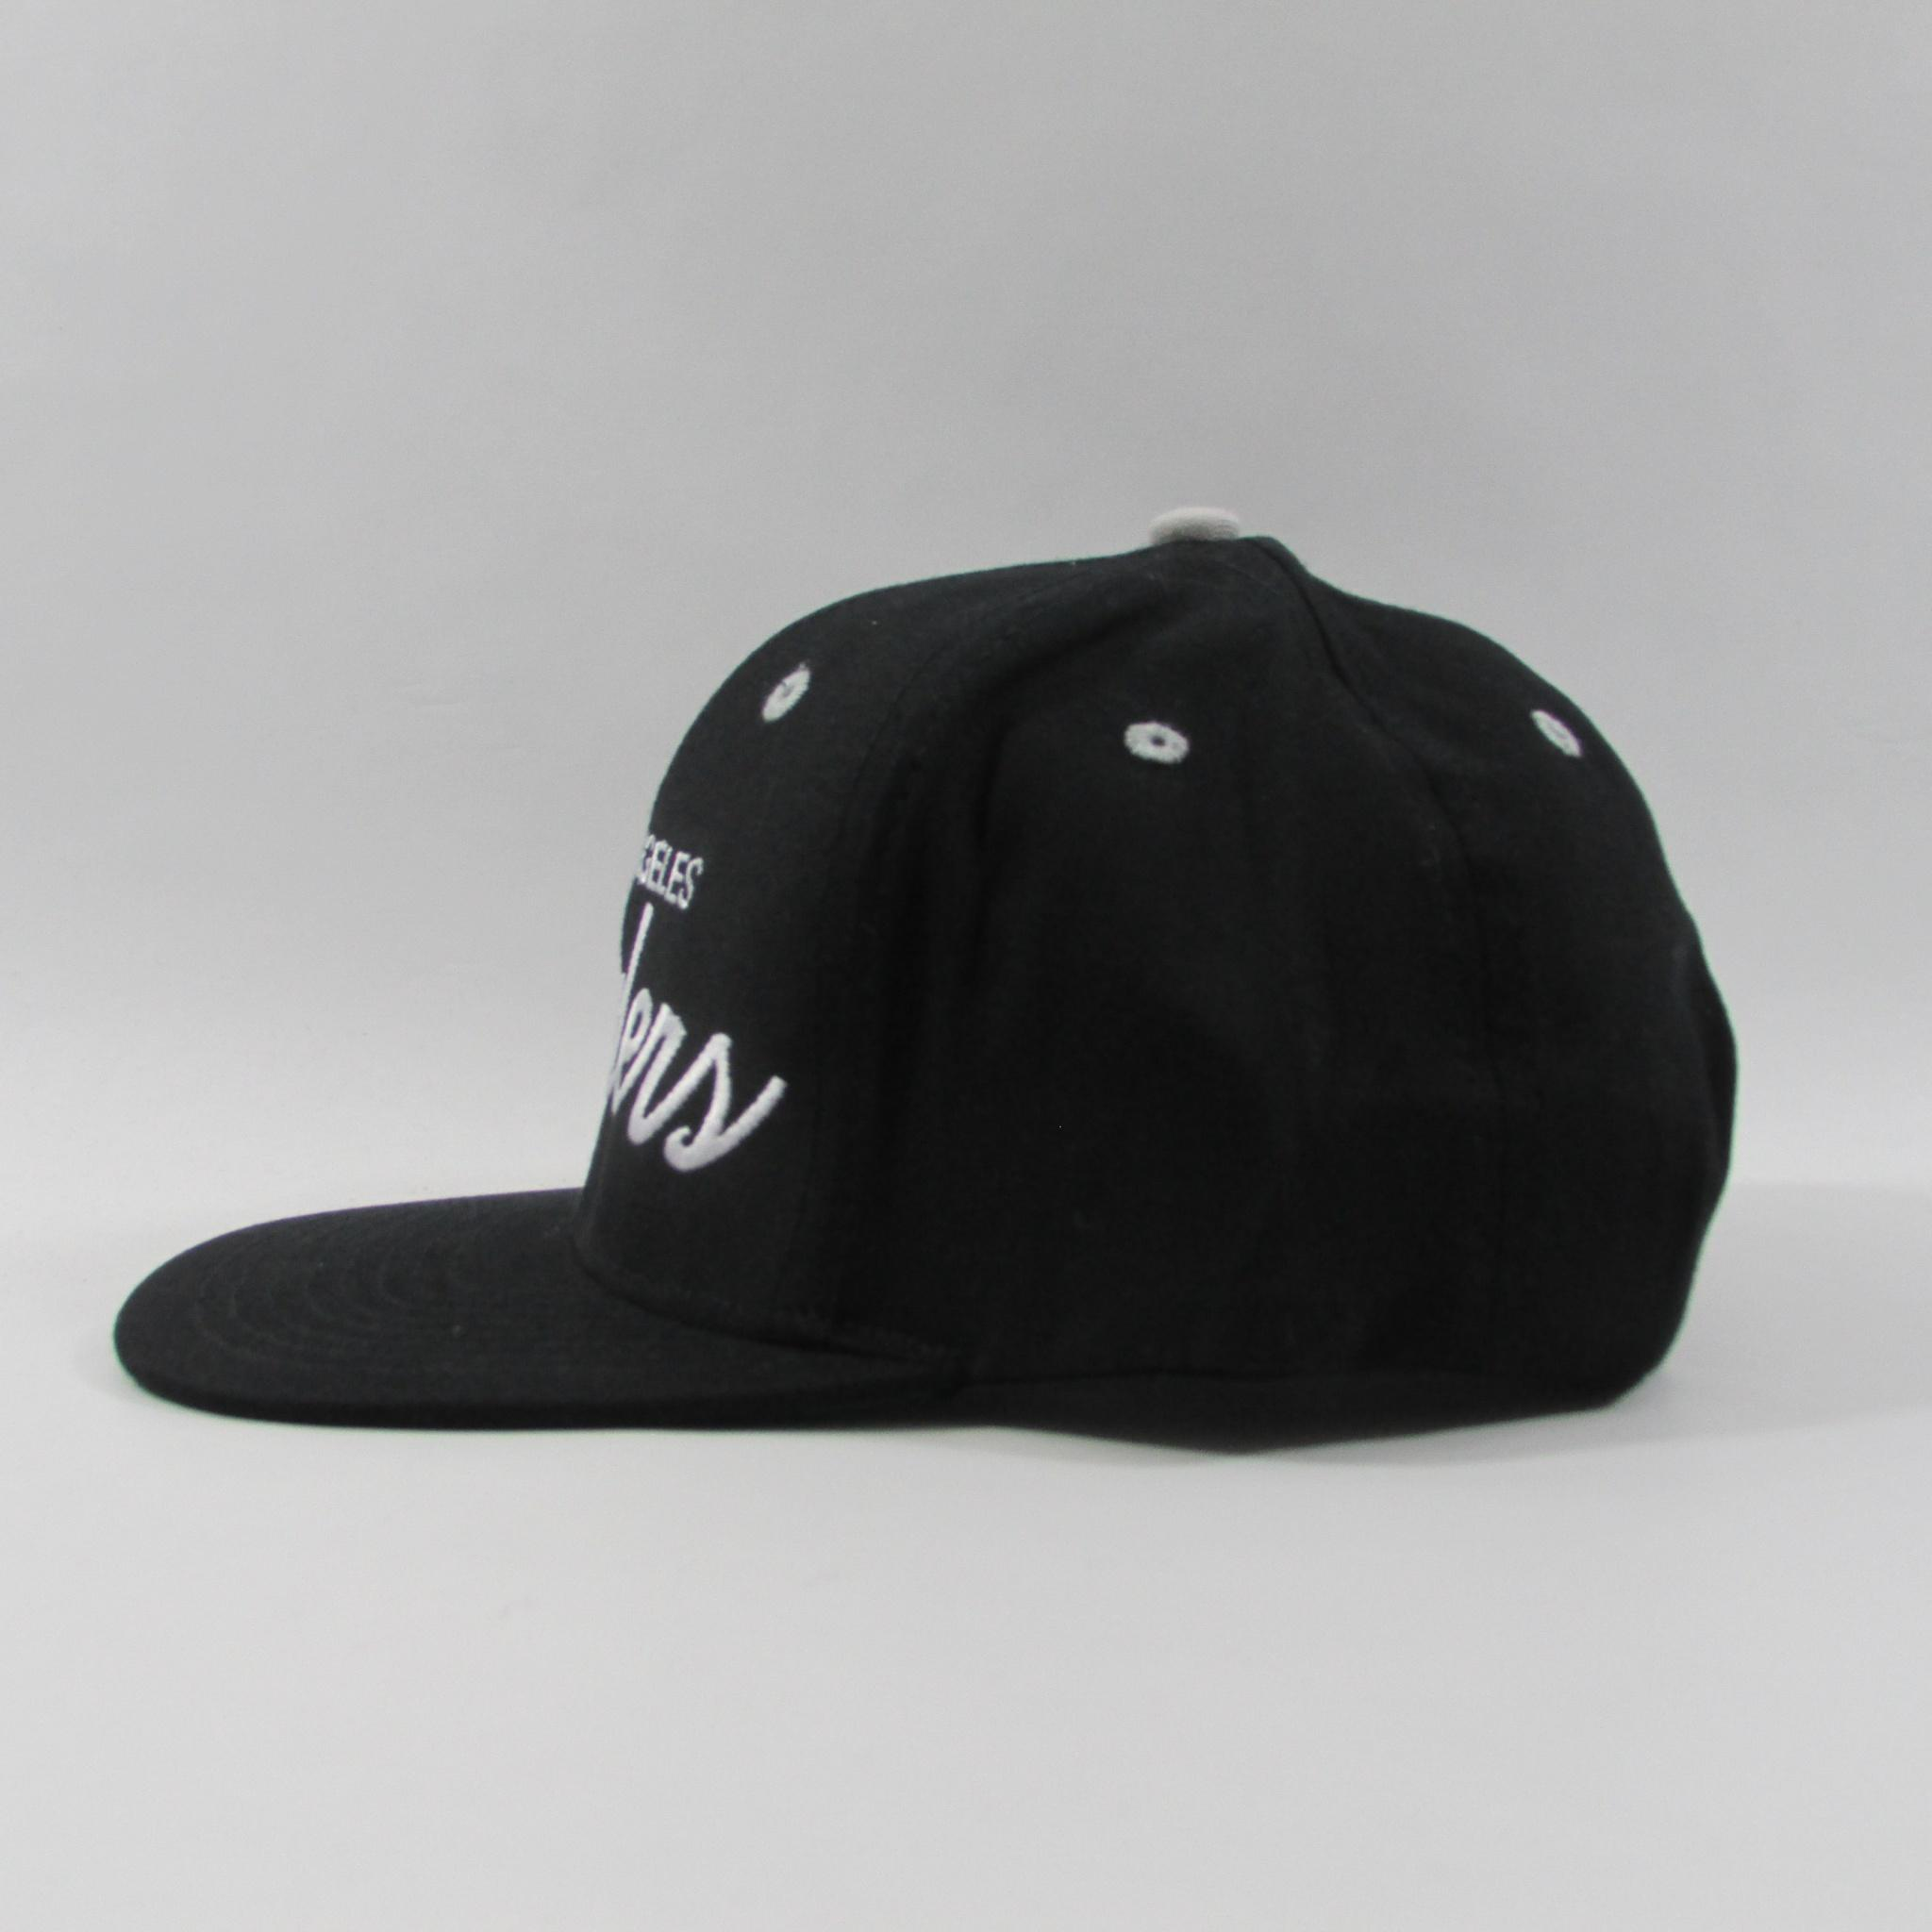 Los Angeles Raiders Throwback Vintage Football Snapback Hat Cursive Font